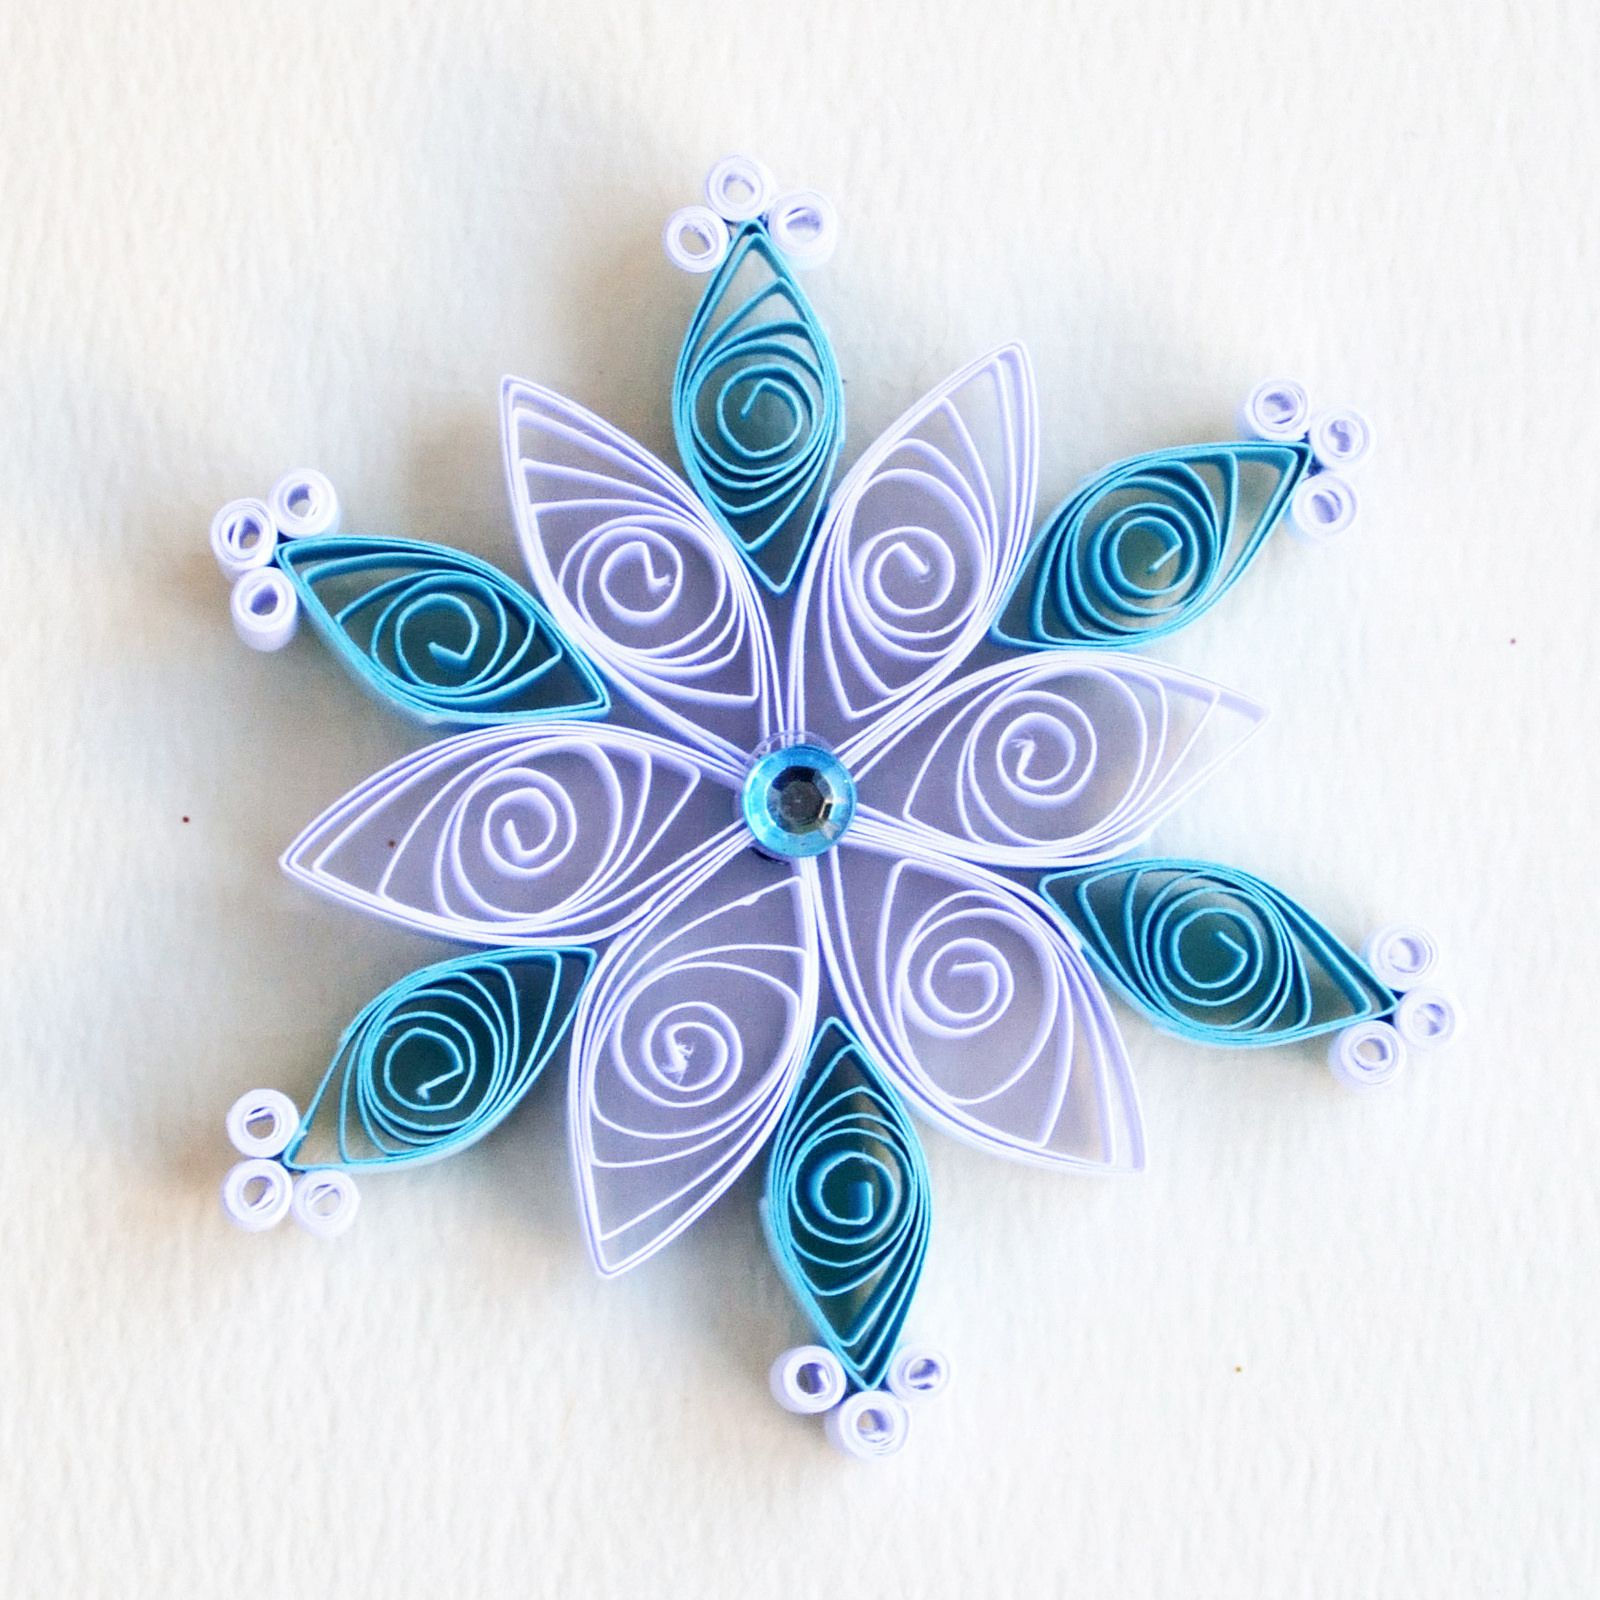 https://flic.kr/p/B6eTXG | 6 point small turquoise and white quilled snowflake with blue diamante